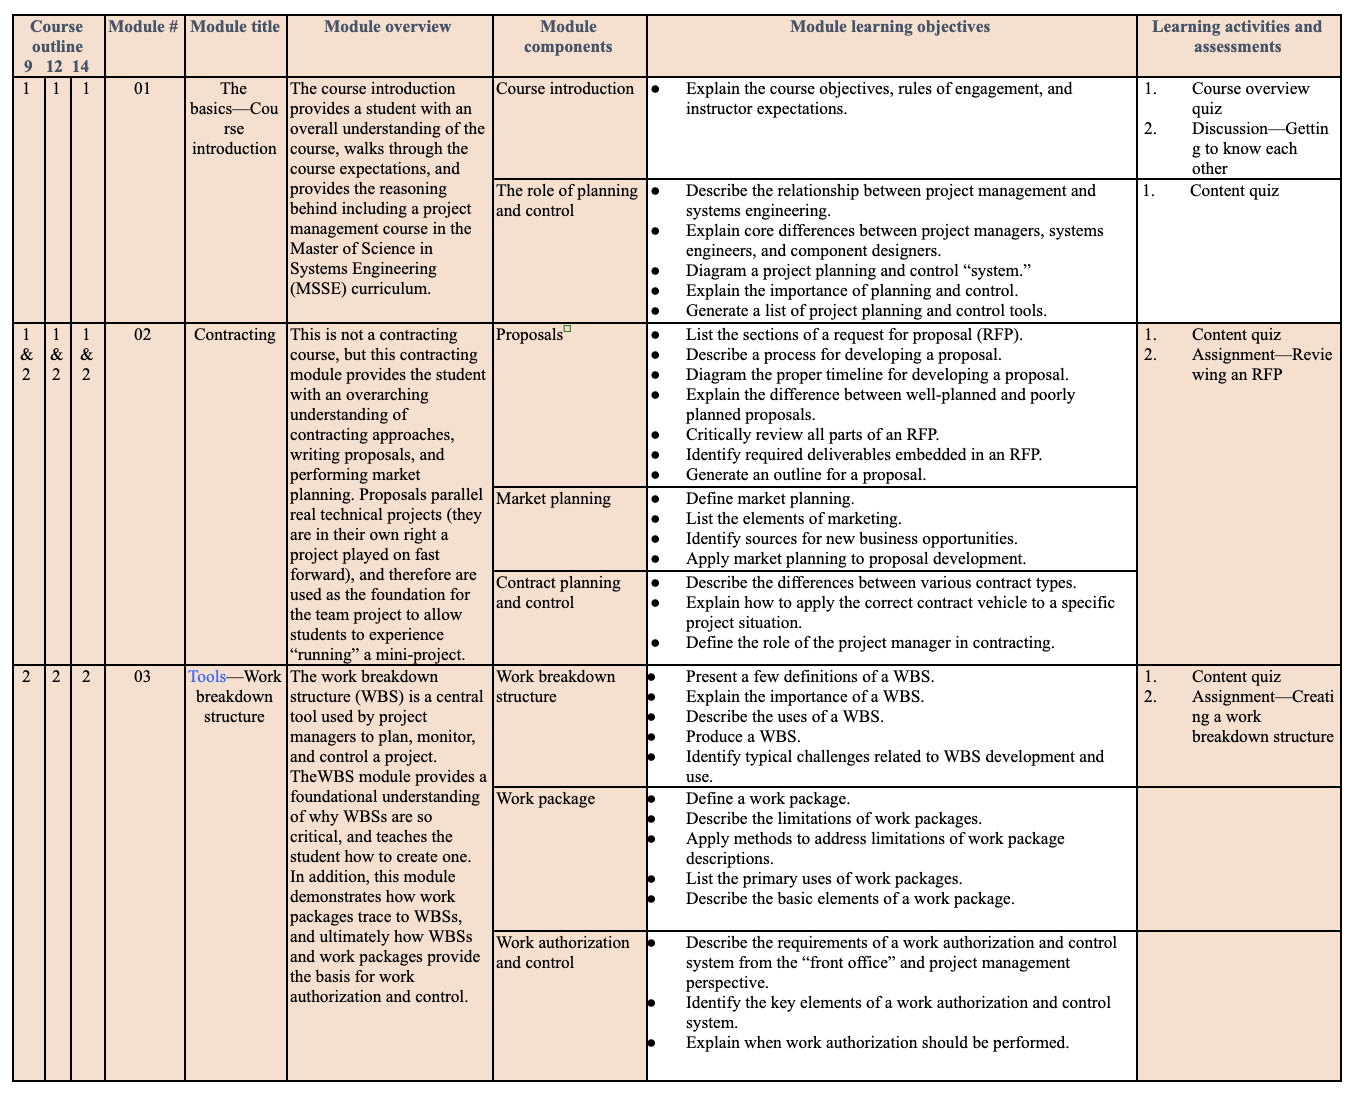 Table of the course design matrix extract